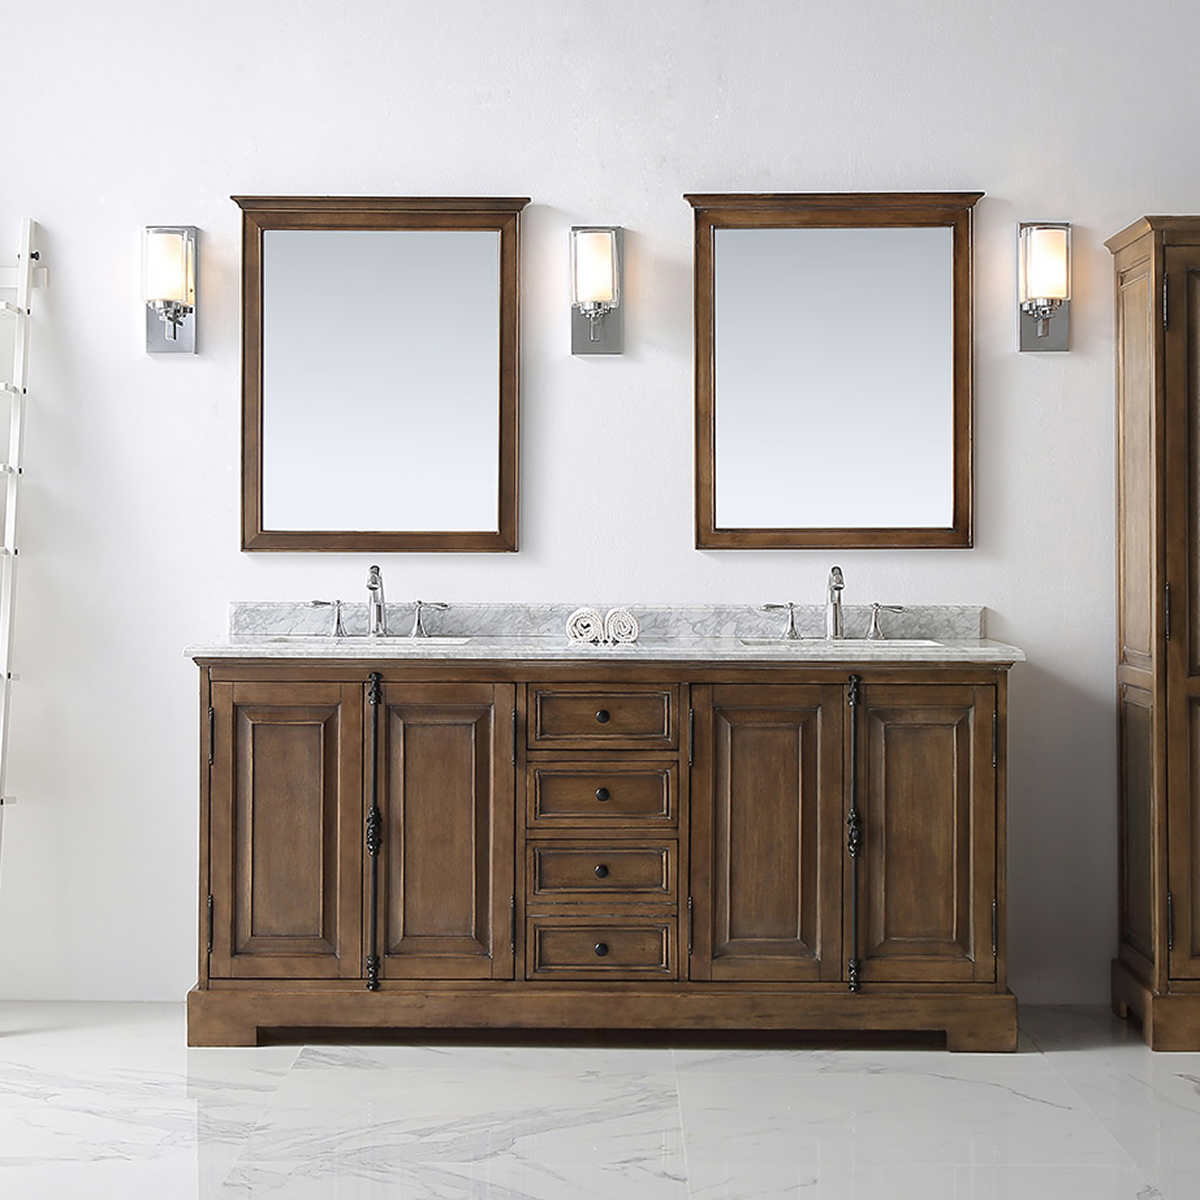 Bathroom cabinets ottawa - Ove Clinton 72 In Double Bathroom Vanity In Almond Stain With Carrara Marble Countertop